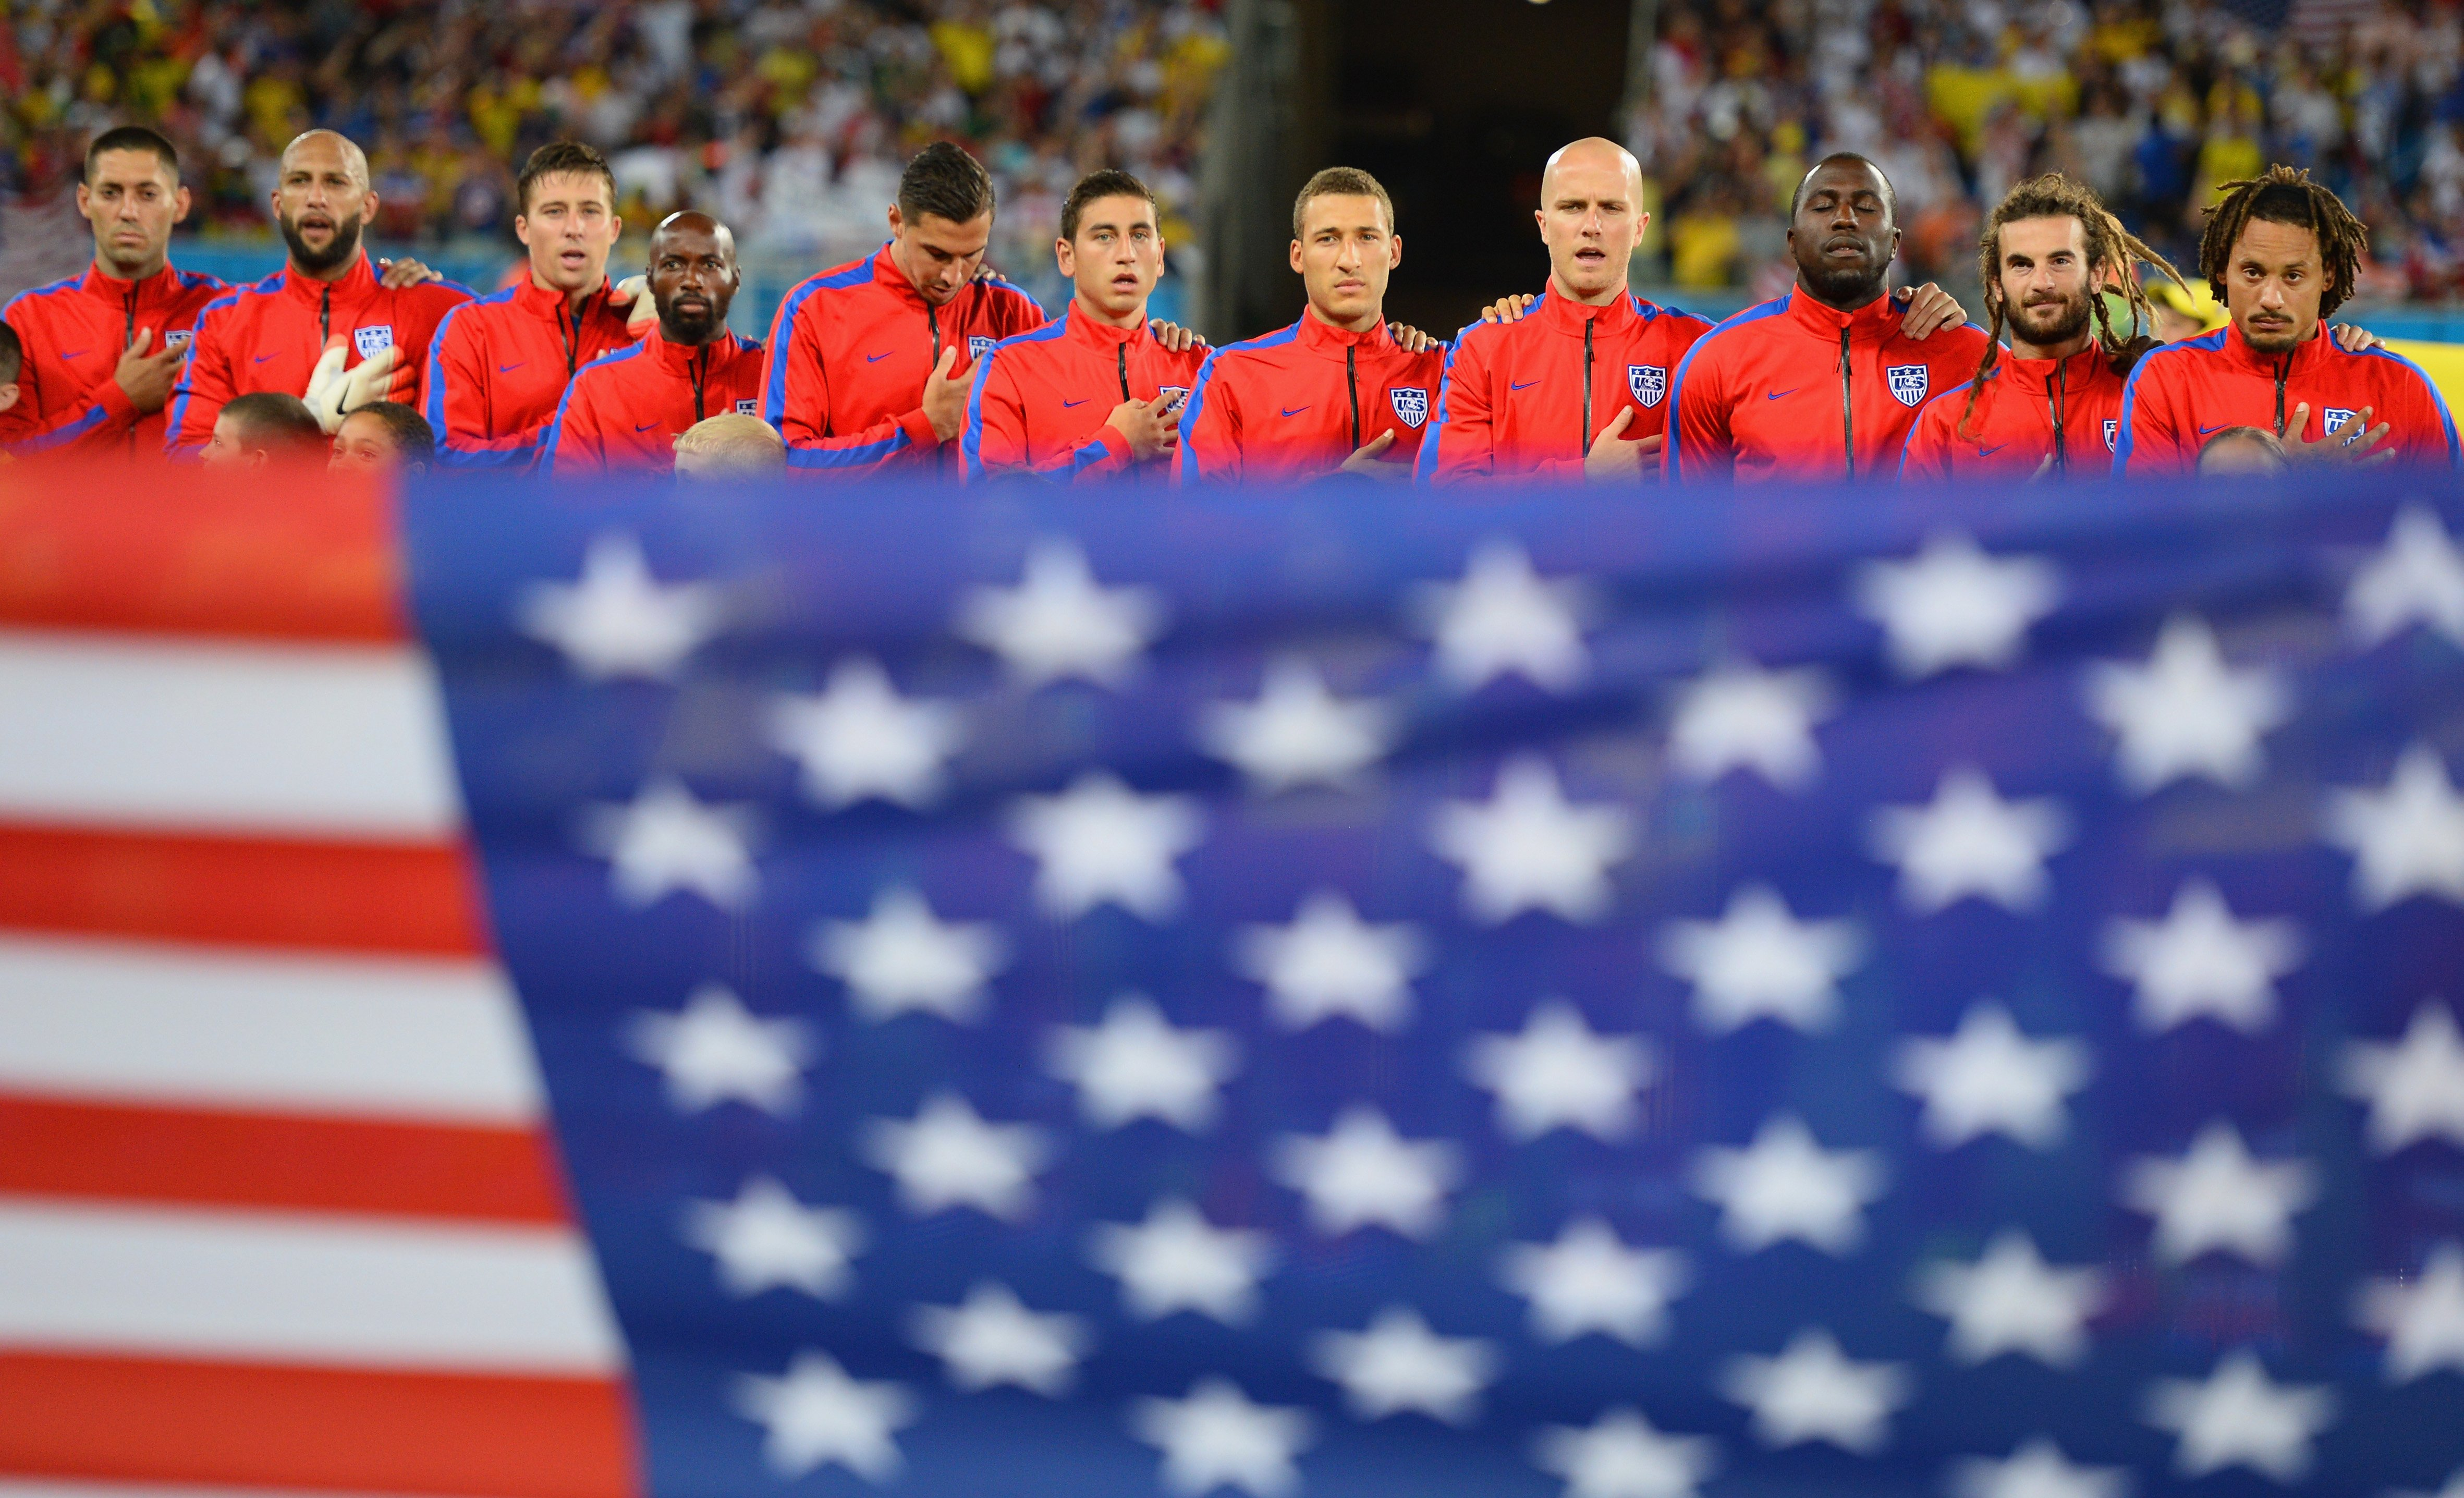 The United States players line up on the field before the 2014 FIFA World Cup Brazil Group G match between Ghana and the United States at Estadio das Dunas on June 16, 2014 in Natal, Brazil.